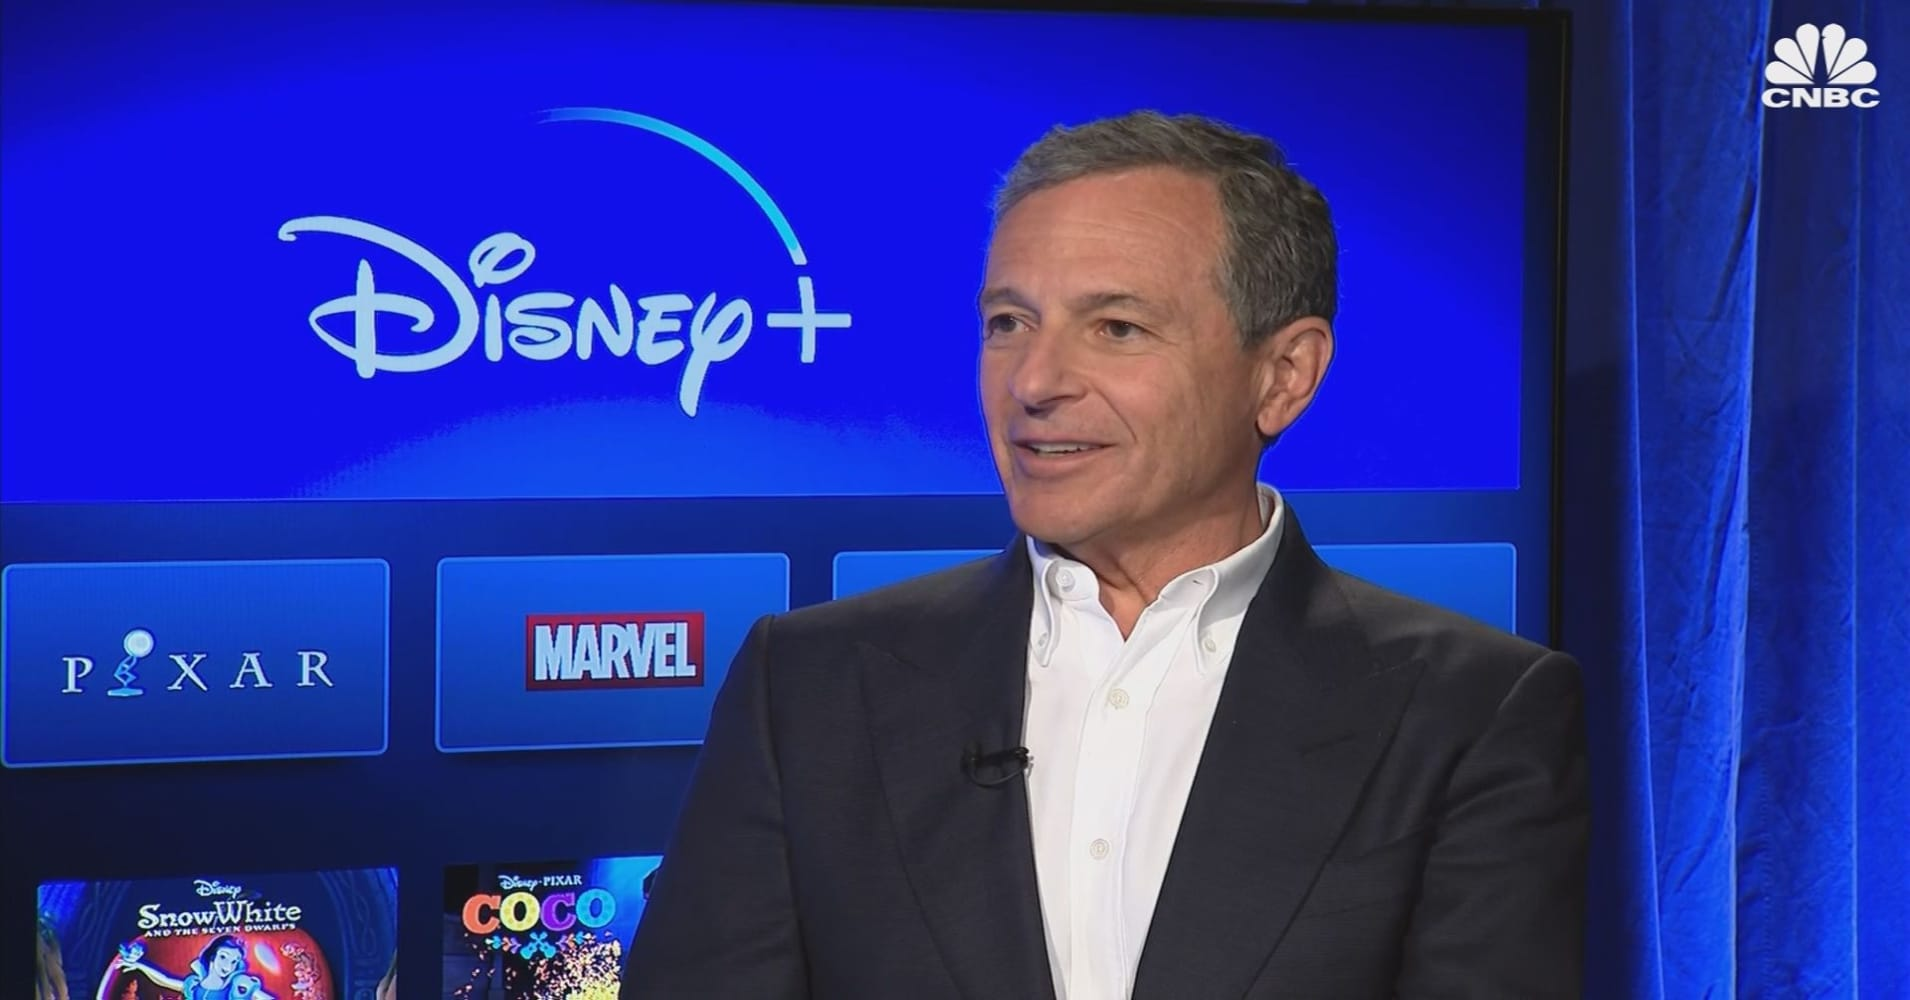 Iger's statement to CNBC